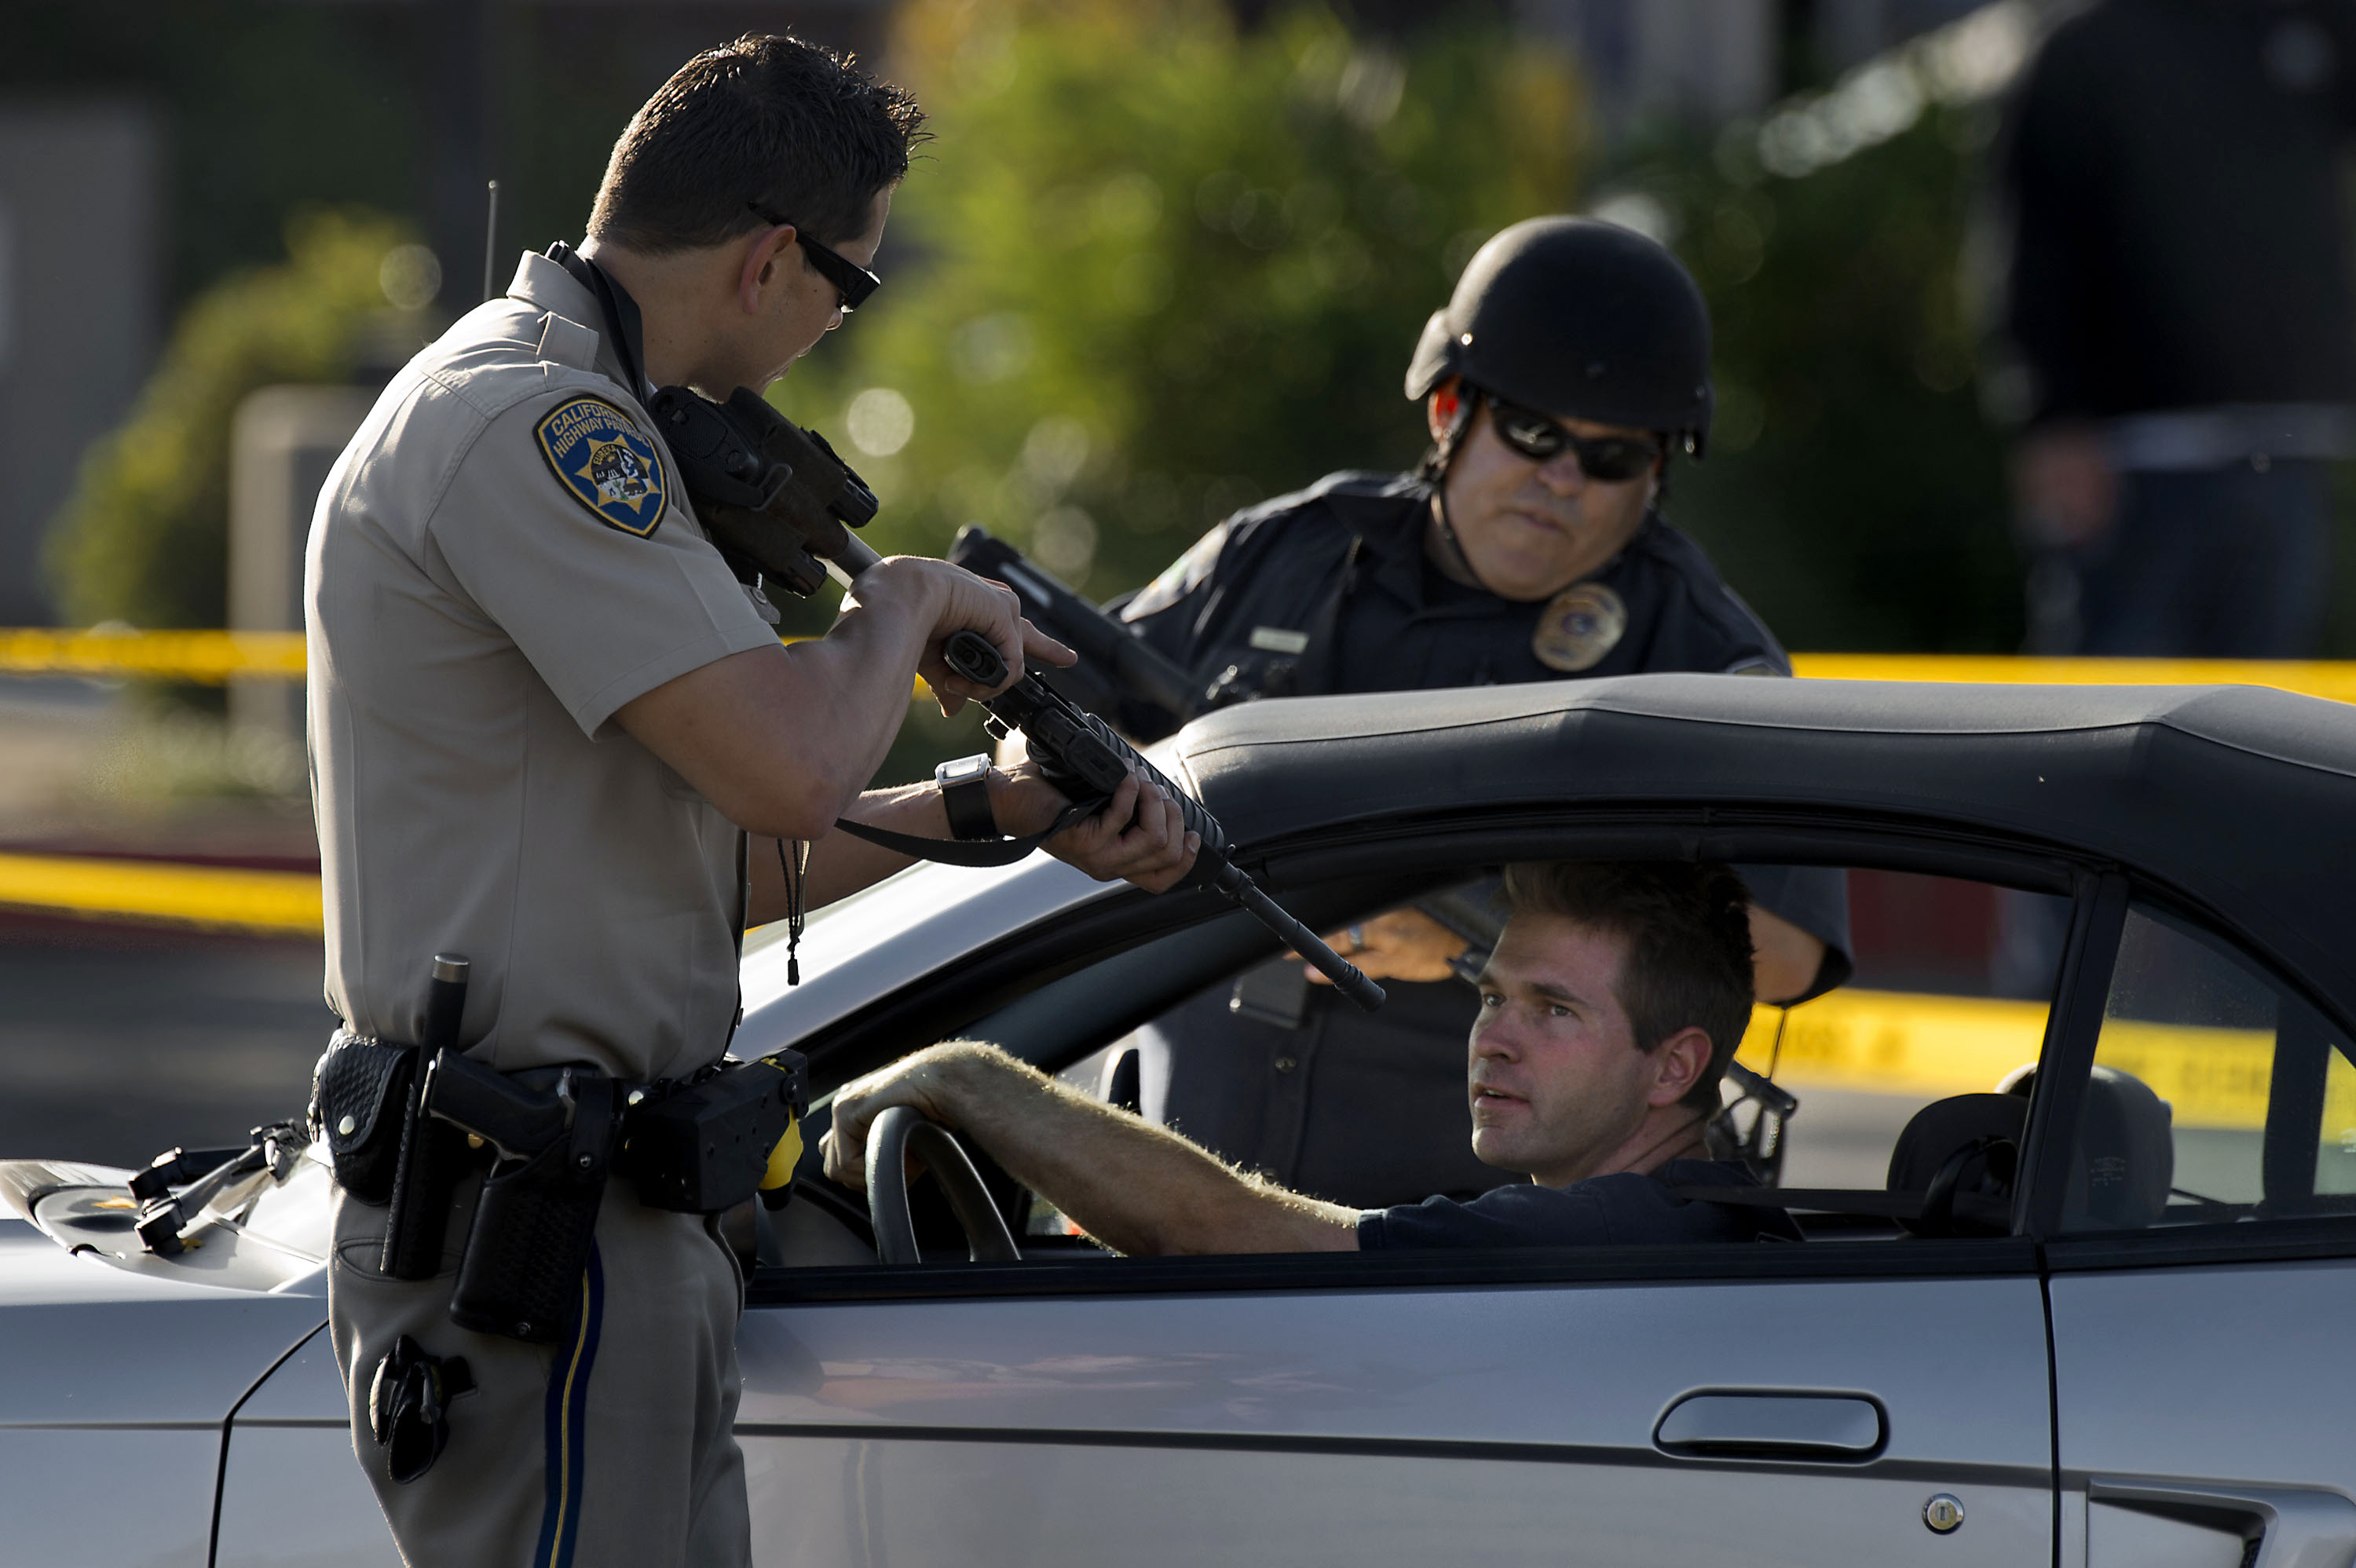 Avatar sacramento county login - California Suspect In Wounding Of Immigration Officer 3 Police Officers Surrenders The Blade